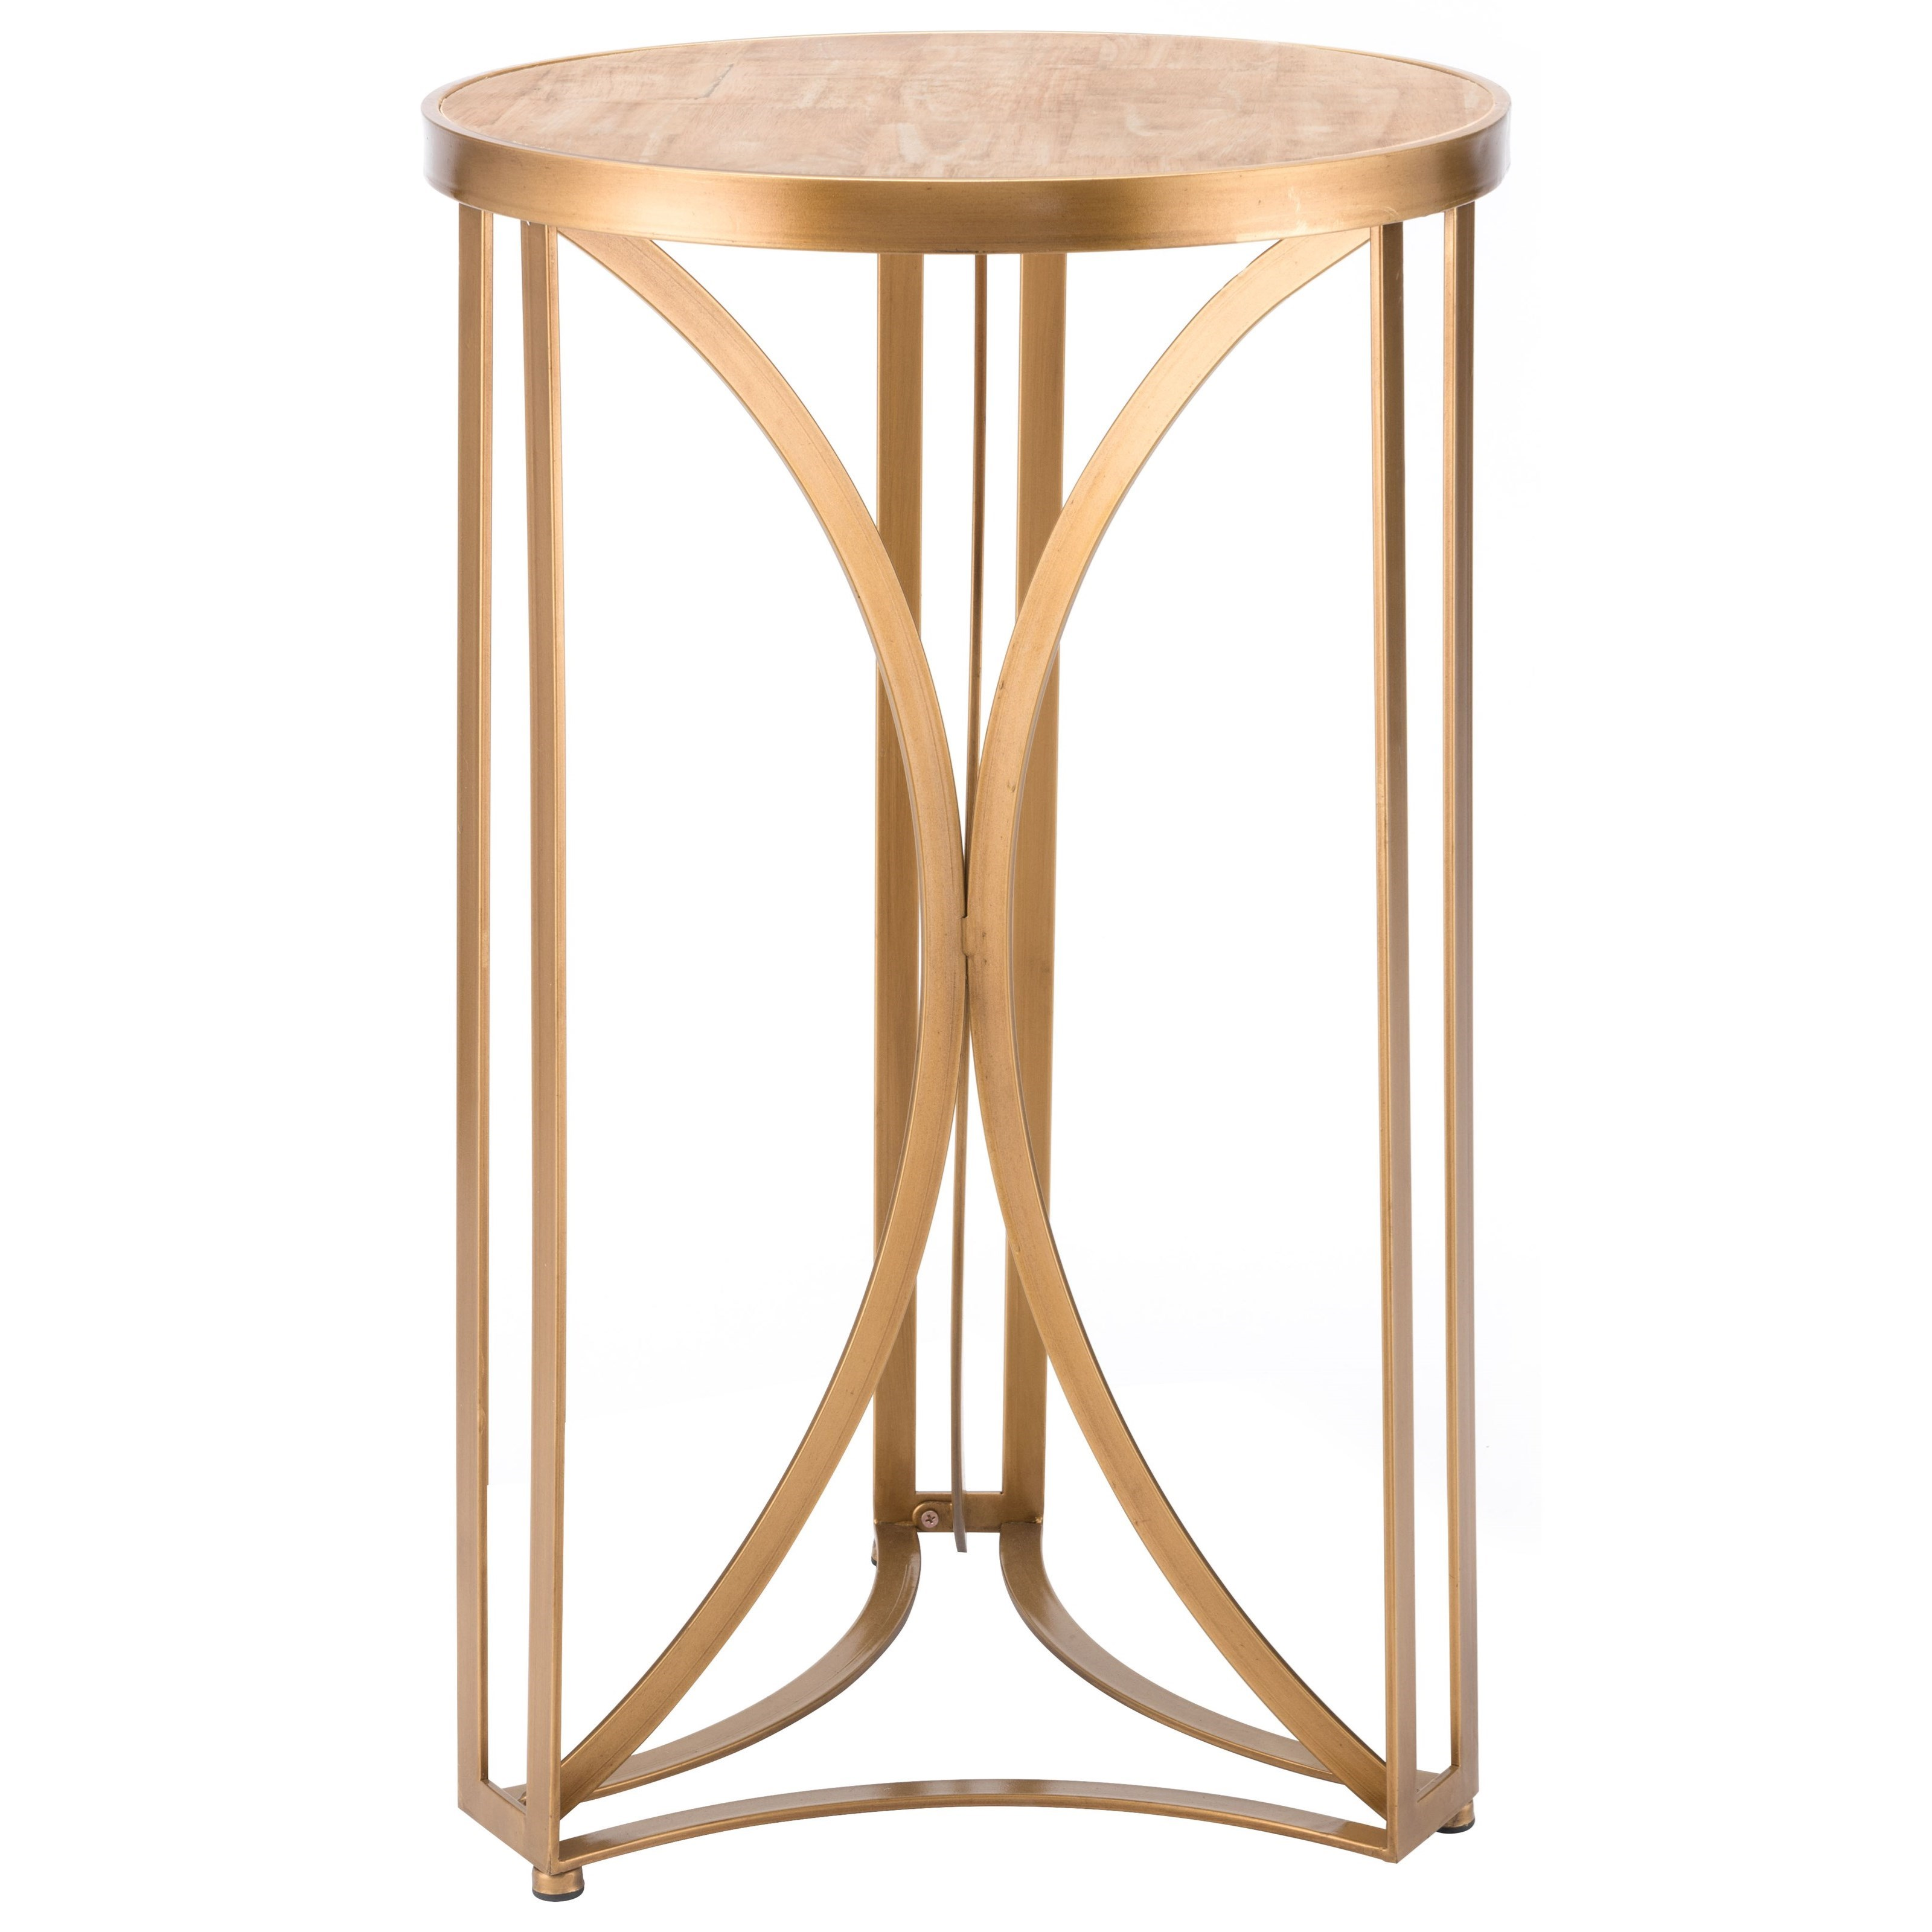 Zuo Accent Tables Spinner Table Large - Item Number: A10573